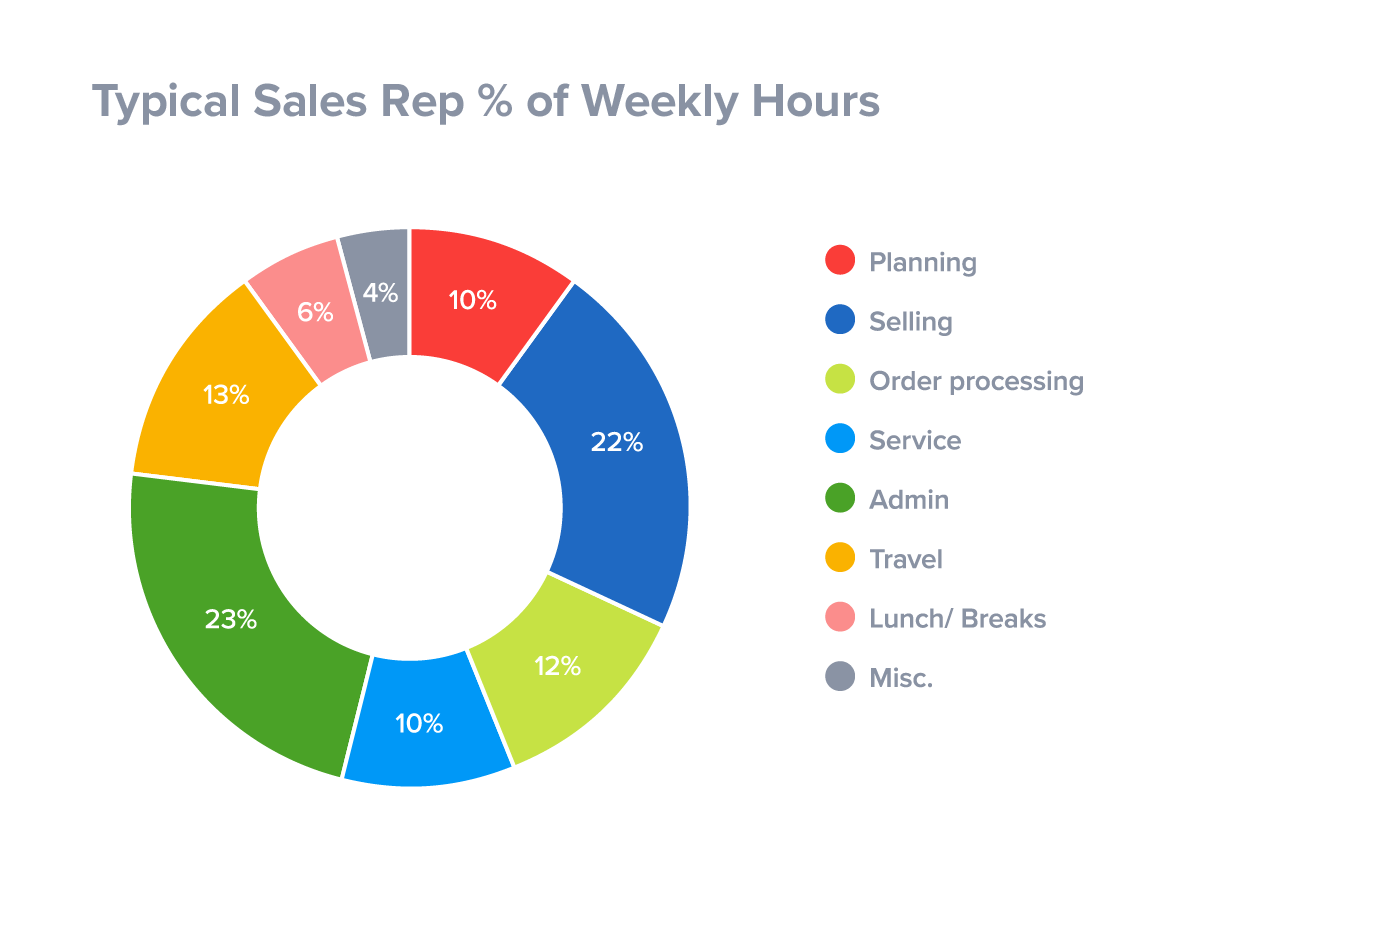 Sales reps spending too much time on administration